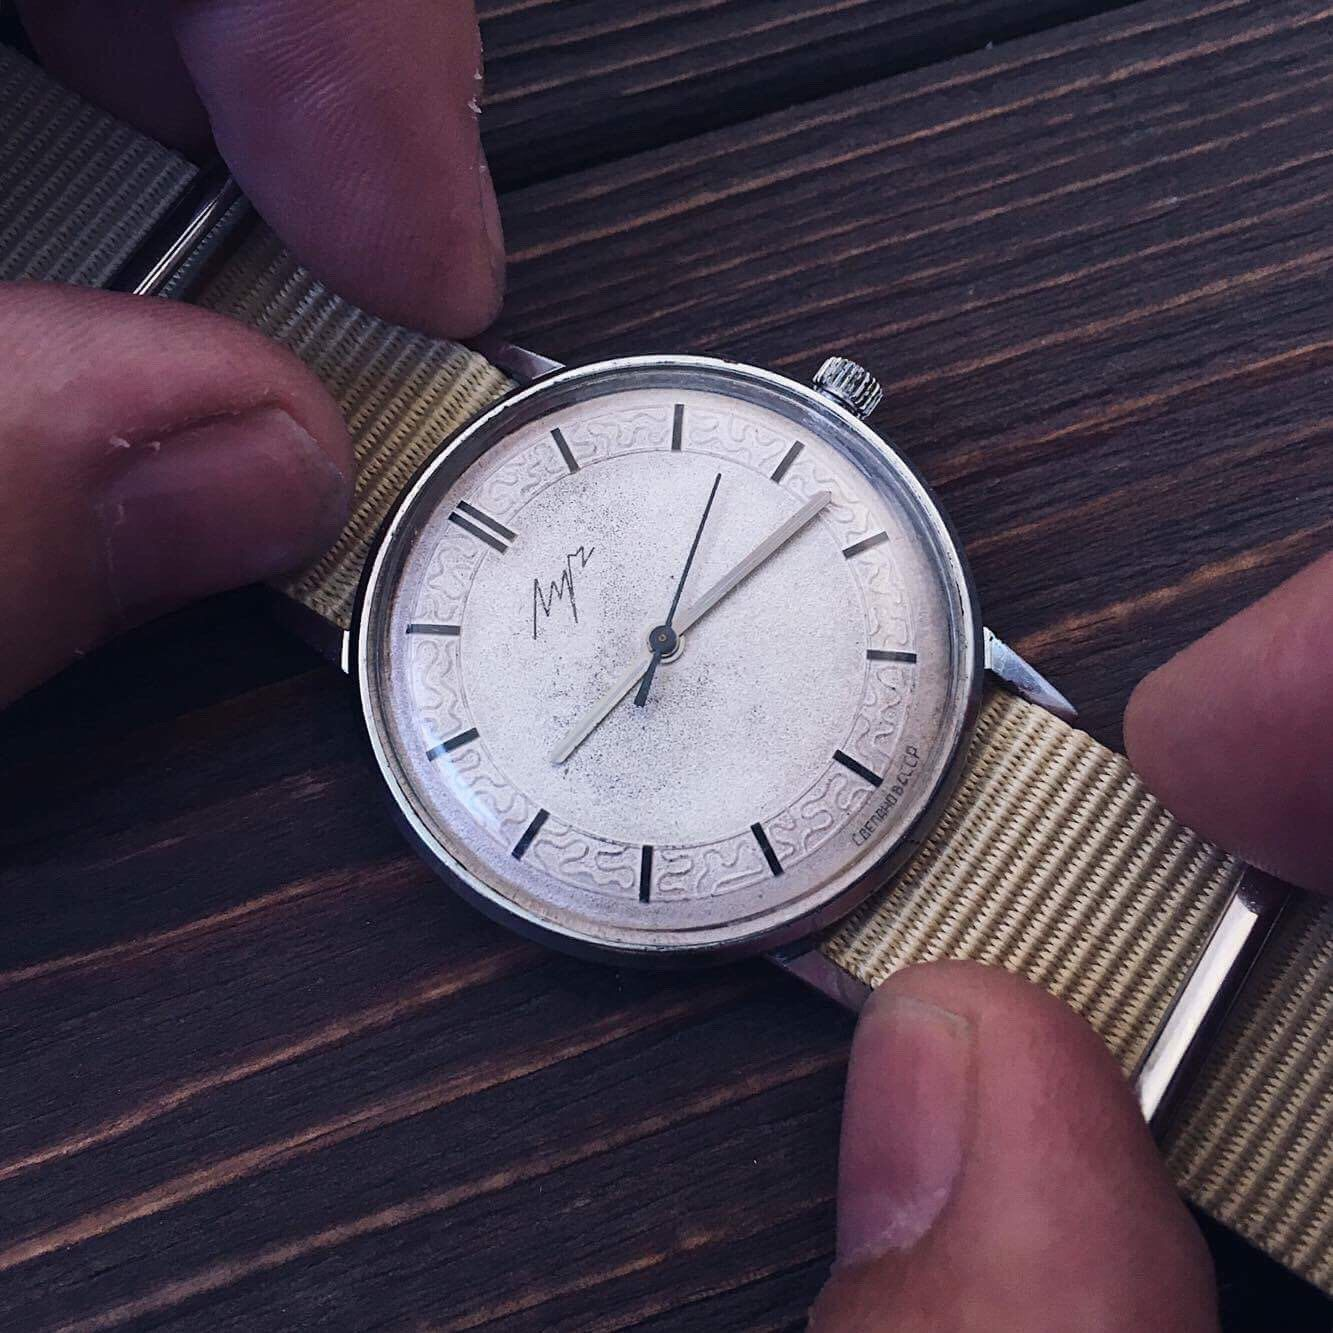 Luch watch relogios